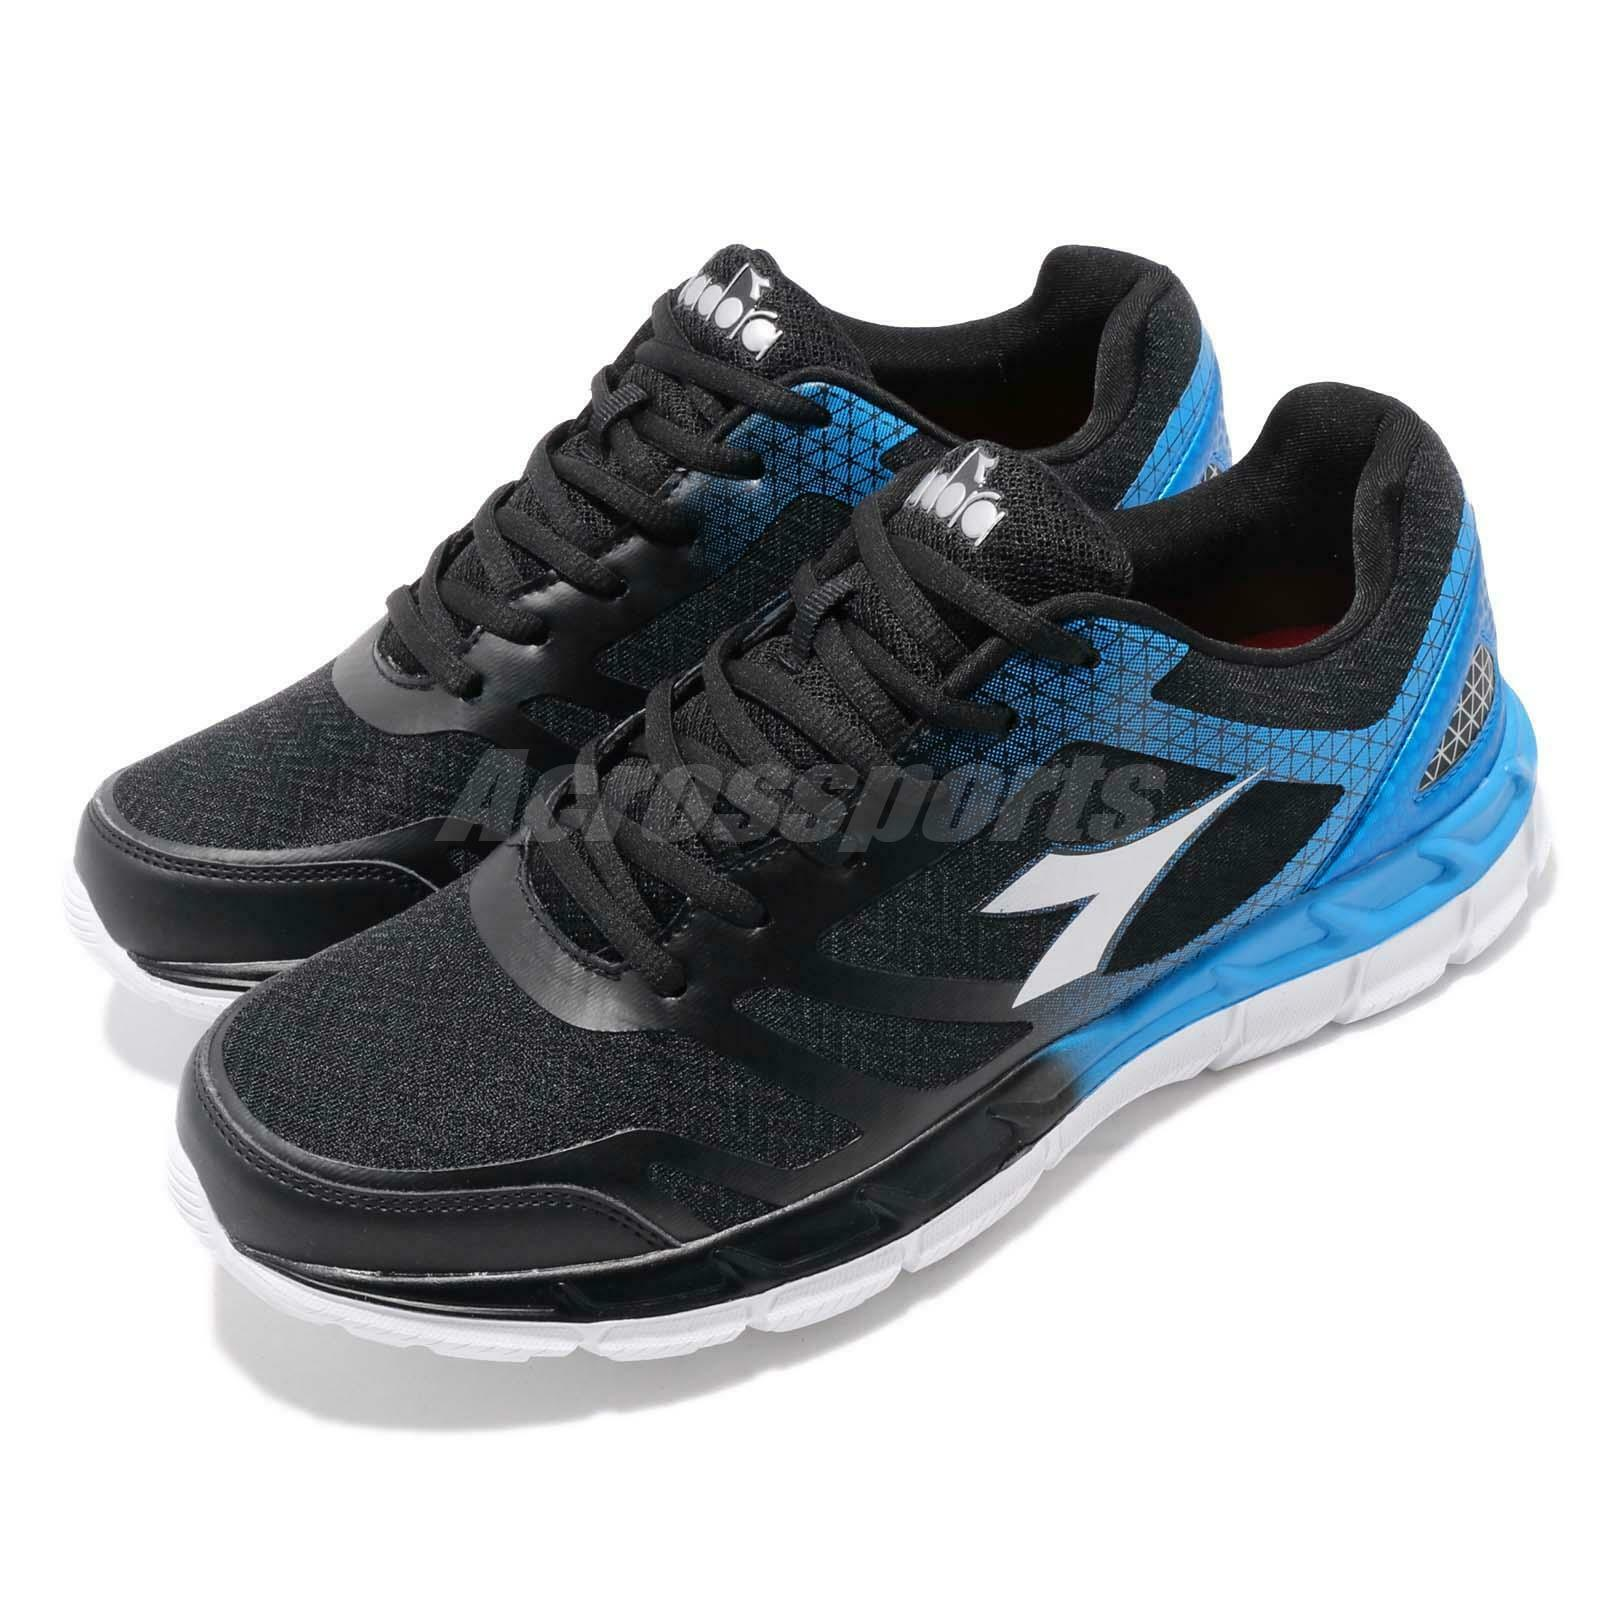 Diadora DA9AMR6930 negro azul blanco Men Running Walking Casual zapatos zapatillas